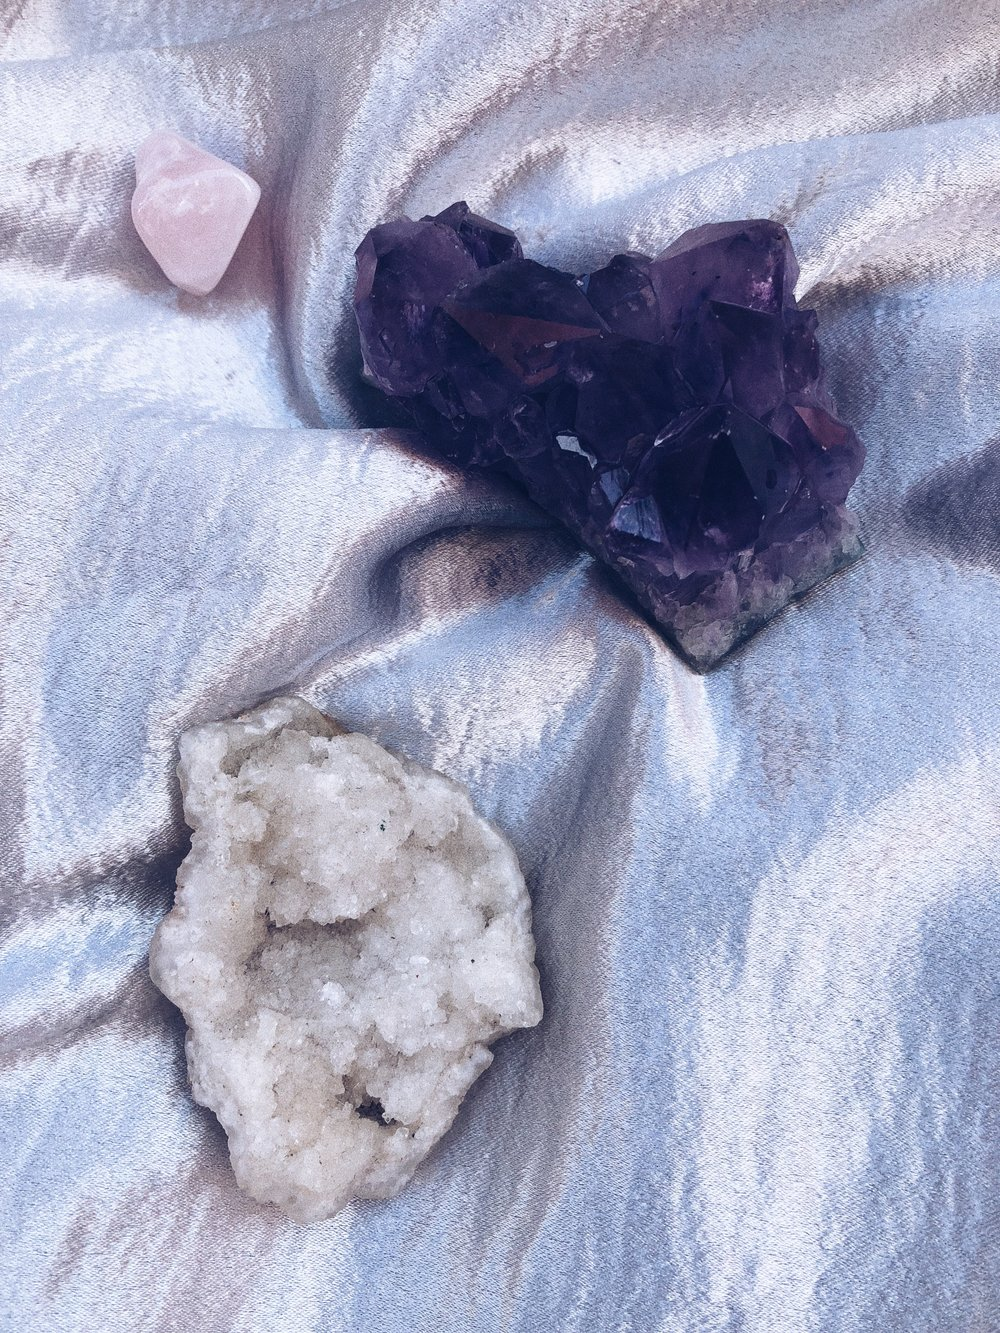 I AM A FAN OF LITTLE HELPERS - NO MATTER HOW SMALL THEY COME. I TURN FOR CHRYSTALS FOR SOME POSITIVE ENERGY AND MORE. WETHER IT'S  ROSE QUARTZ  OR  AMETHYST  – THEY EVEN LOOK GOOD IN YOUR HOME. ONE OF MY FAVS IS ROSE QUARTZ THAT I SOMETIMES PUT UNDER MY PILLOW BECAUSE IT GIVES YOU GOOD ENERGY AFTER A ROUG WEEK AND SUPPORTS REGENERATING YOUR NERVE SYSTEM AND YOUR HEART. ALSO THE AMETHYST HELPS WITH EMOTIONAL ISSUES, INSOMNIA AND NIGHTMARES AND BALANCES YOUR CHAKRA.  - T